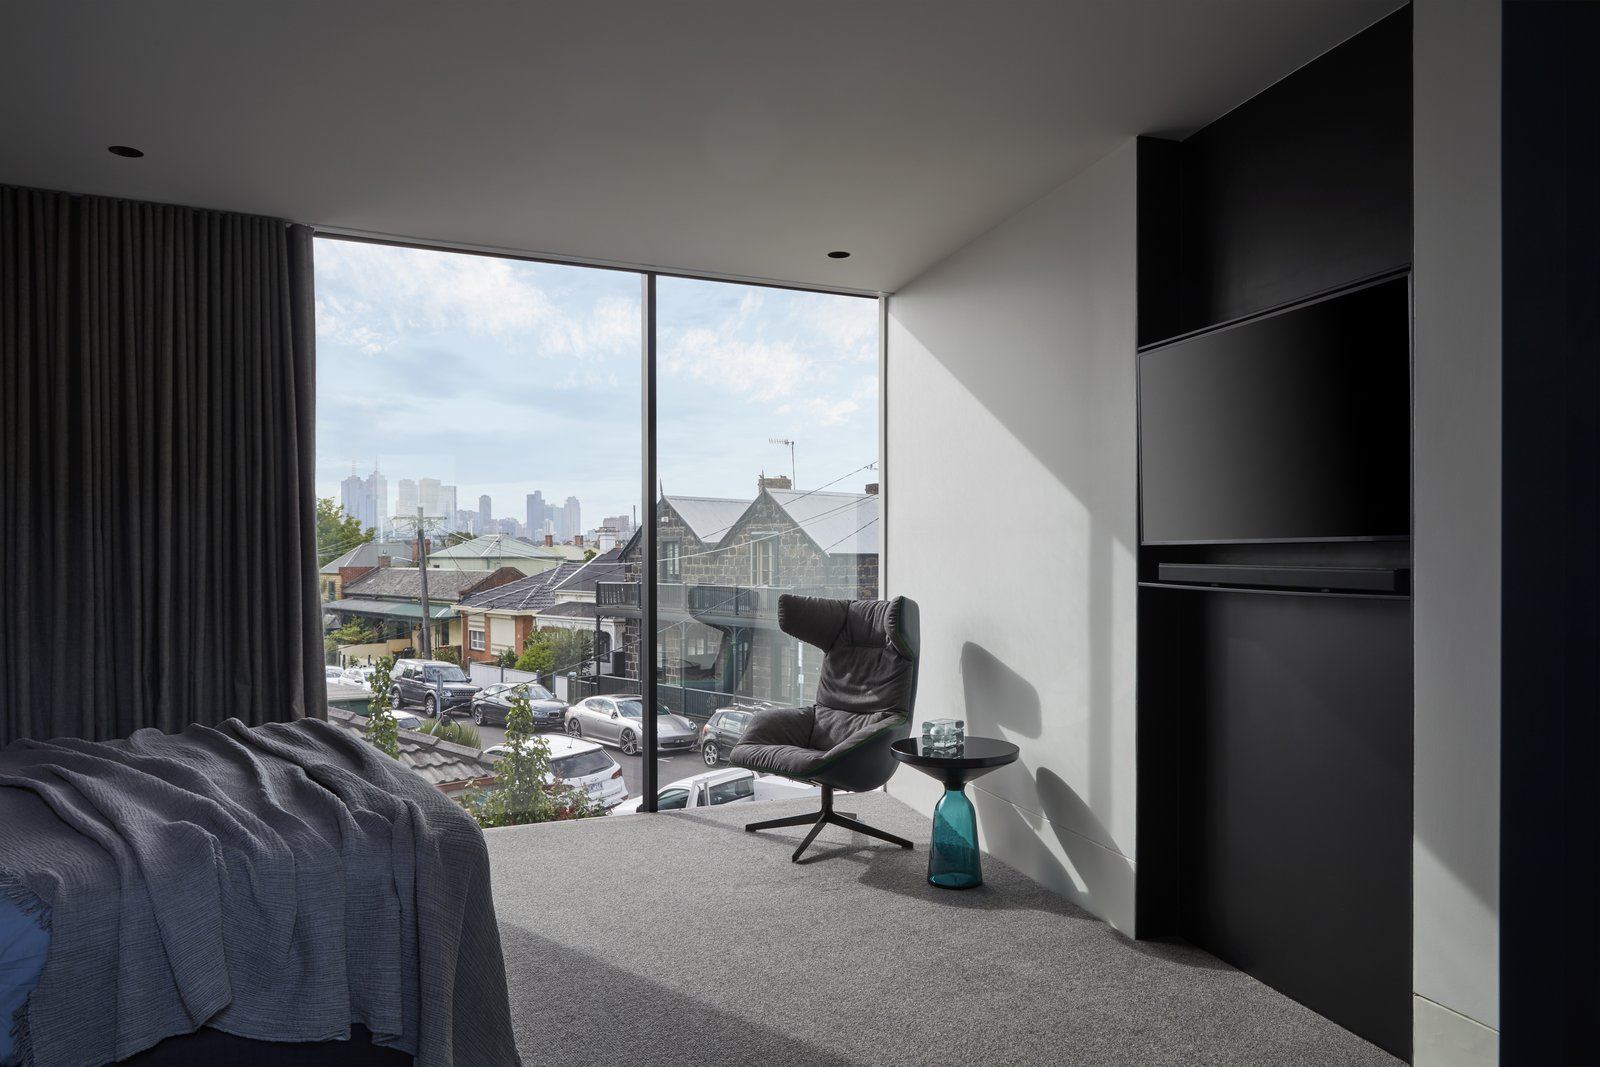 Bedroom, Recessed, Chair, Carpet, Ceiling, and Bed The extension's cantilevered upper level orientates the master bedroom toward the city skyline.   Bedroom Carpet Chair Ceiling Photos from An Old Kit Home Is Transformed Into a Multi-Generational Abode